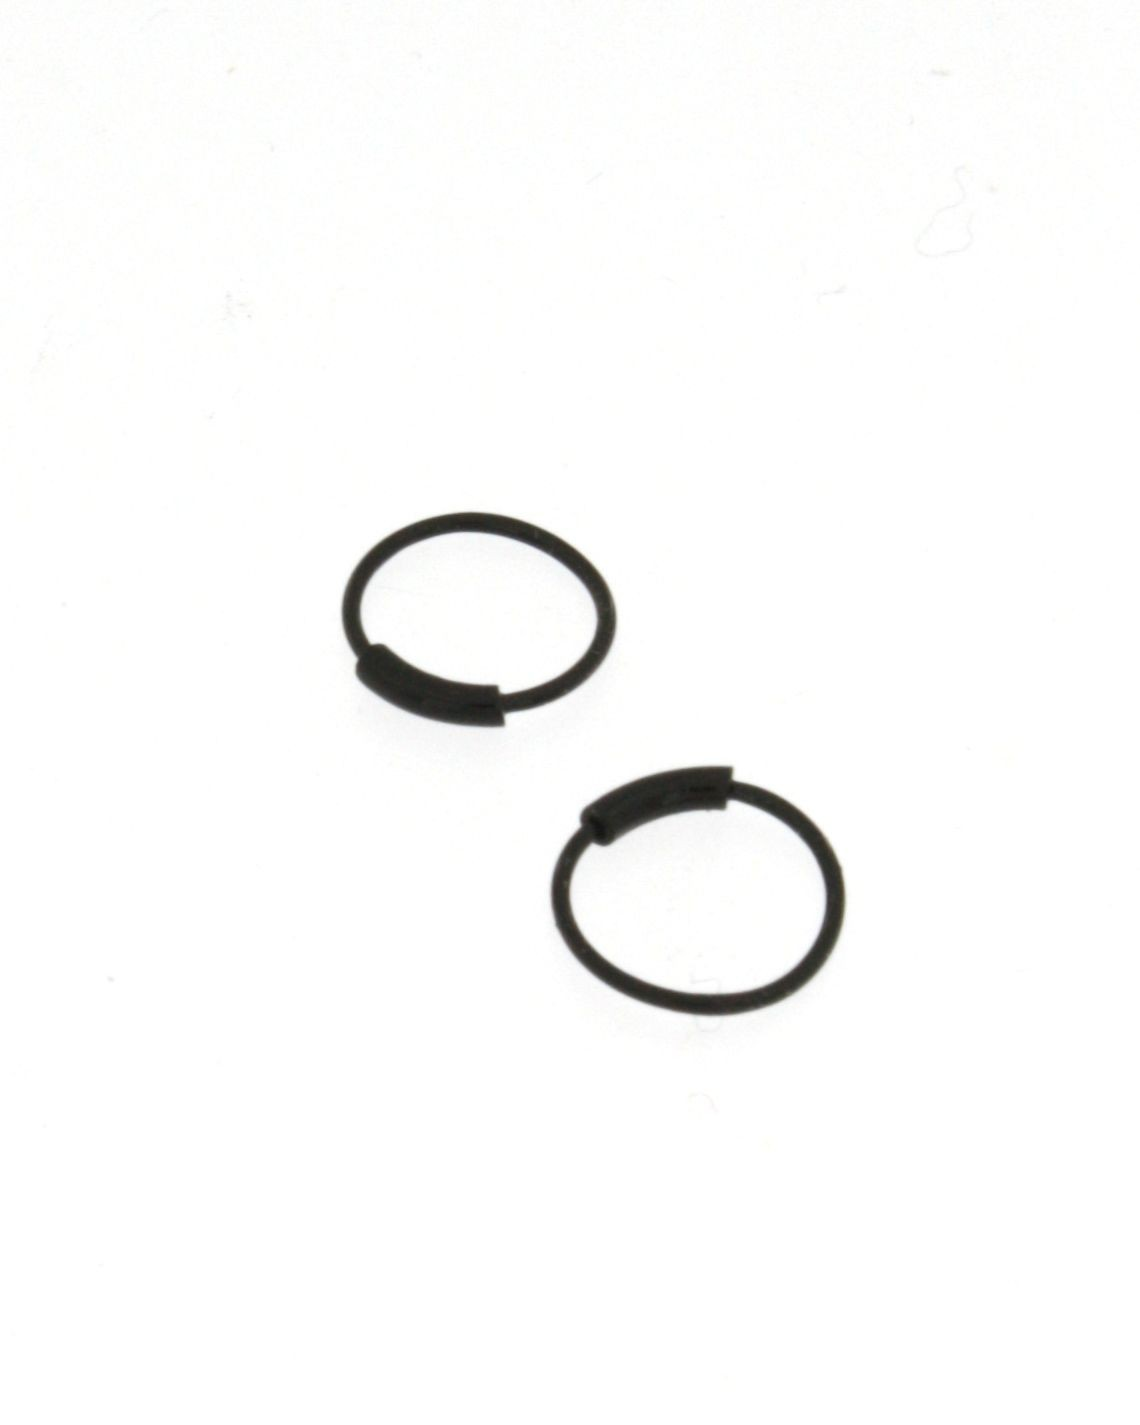 MINI EARRINGS AND NOSE RINGS - SEPTUM ARG-1OR130-06 - Oriente Import S.r.l.